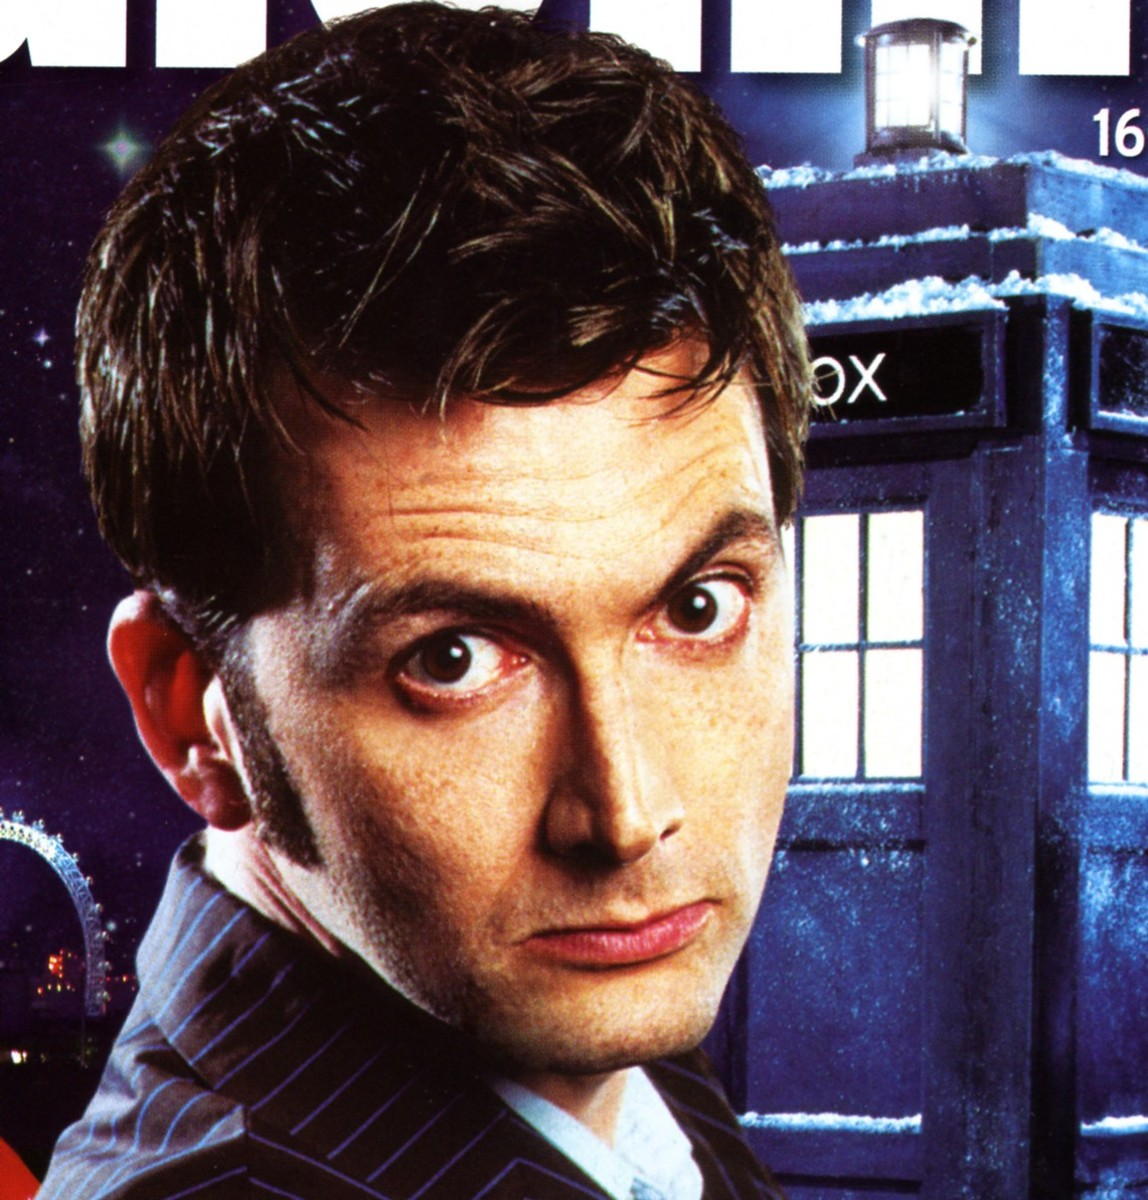 David Tennant - The best Dr Who ever?